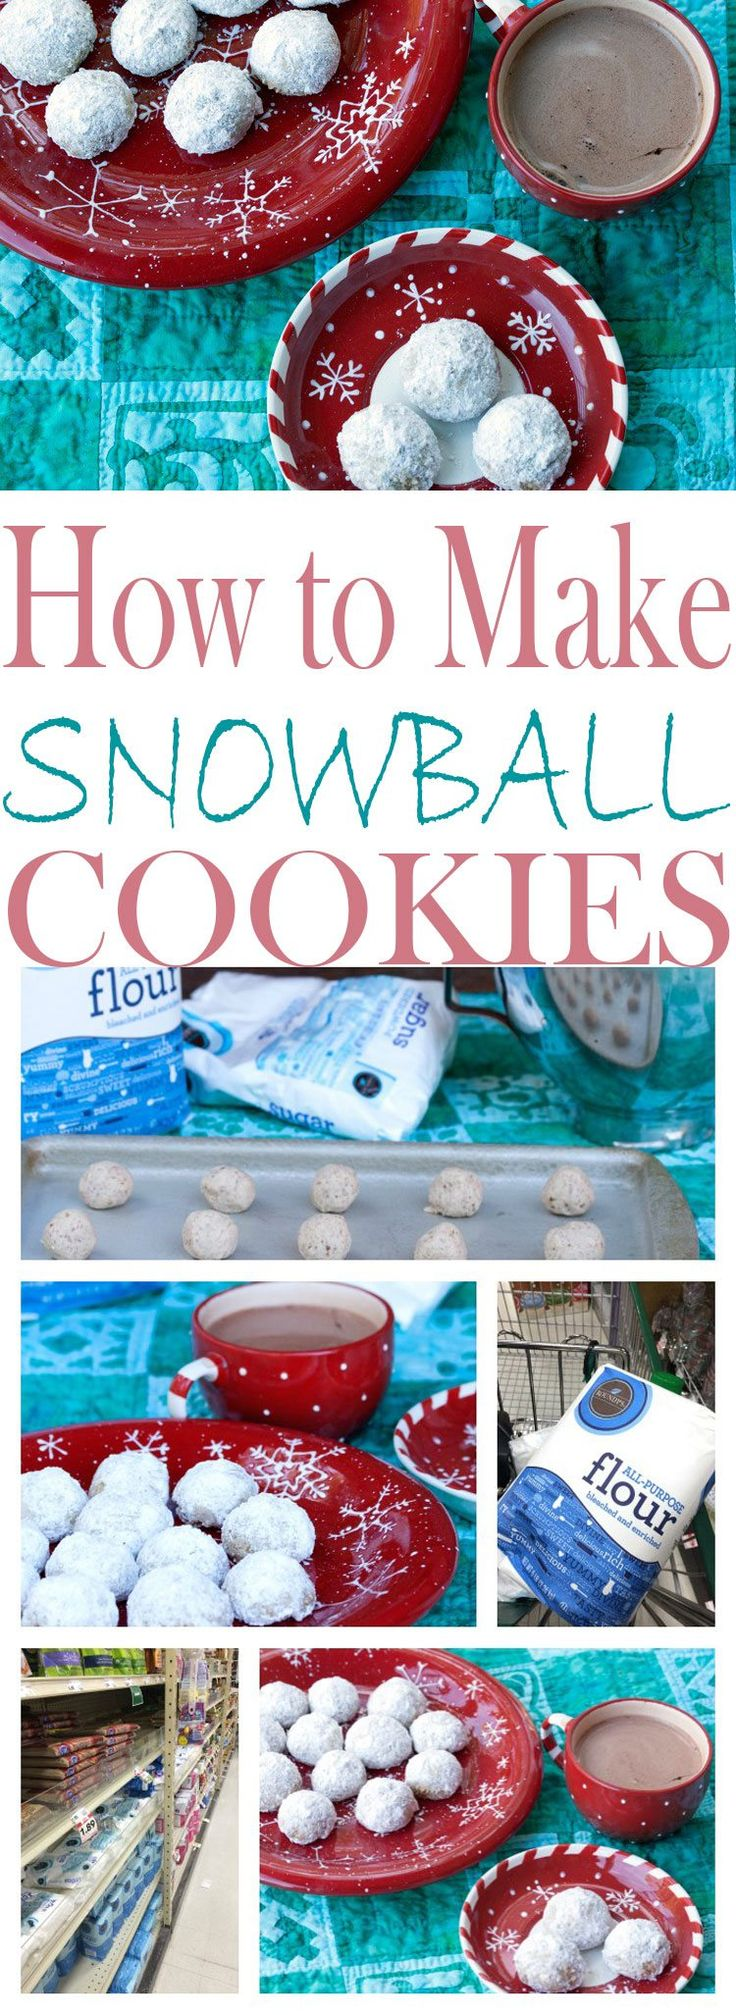 How to Make Snowball Cookies- a Time Honored Holiday Tradition with a peppermint candy cane twist. This is one cookie you'll want to gobble up.